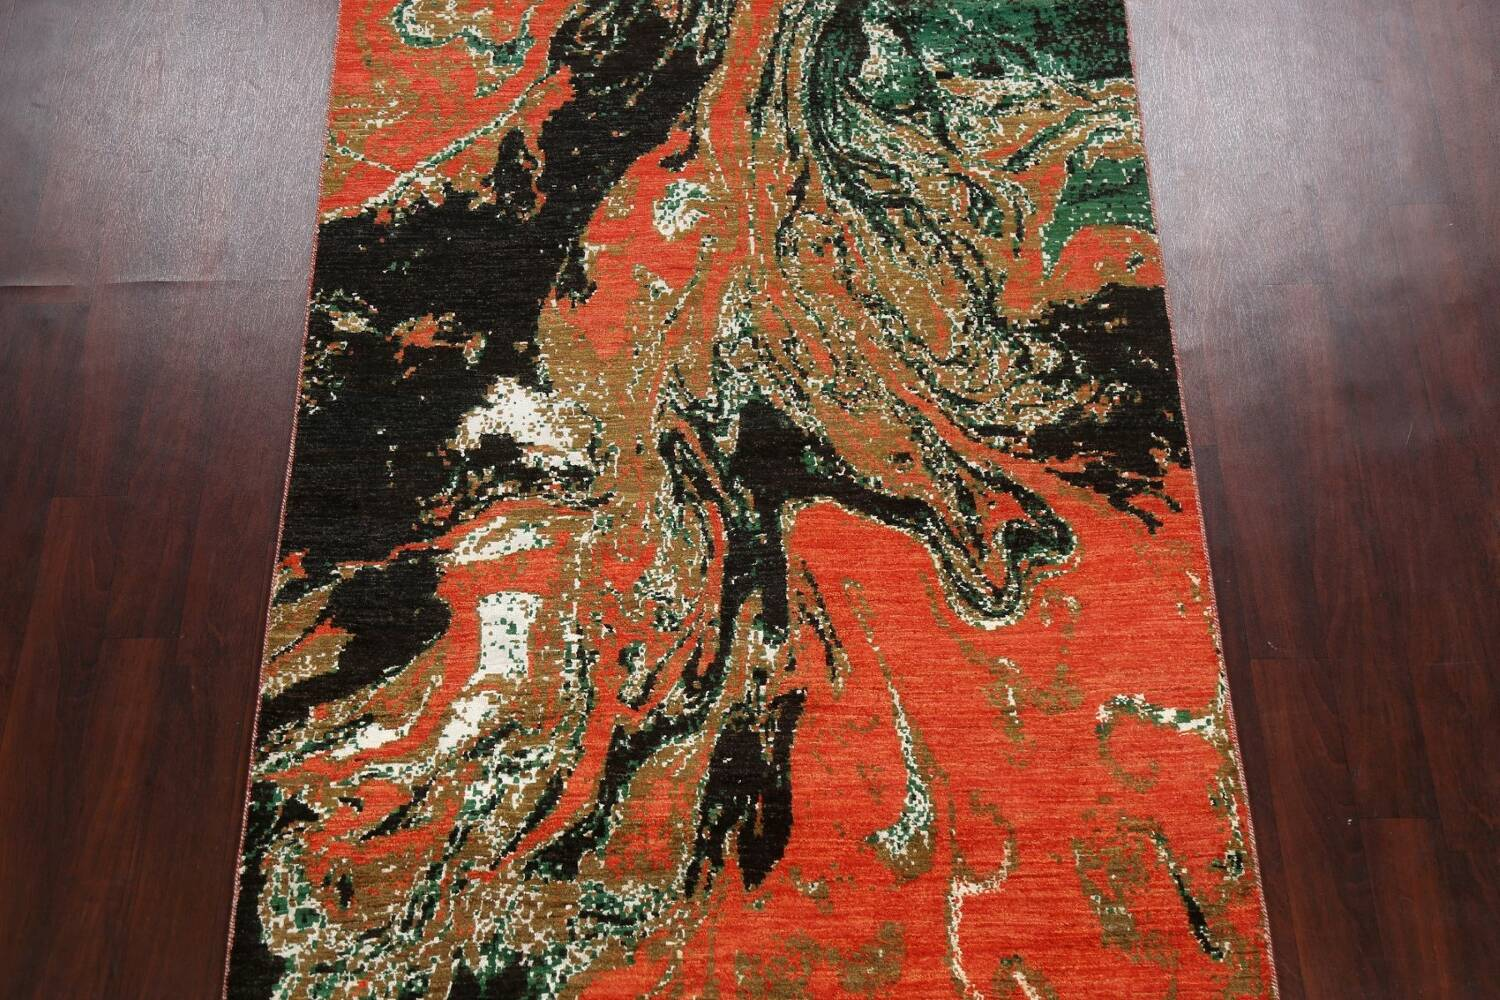 Artistic Modern Abstract Oriental Area Rug 5x8 image 3